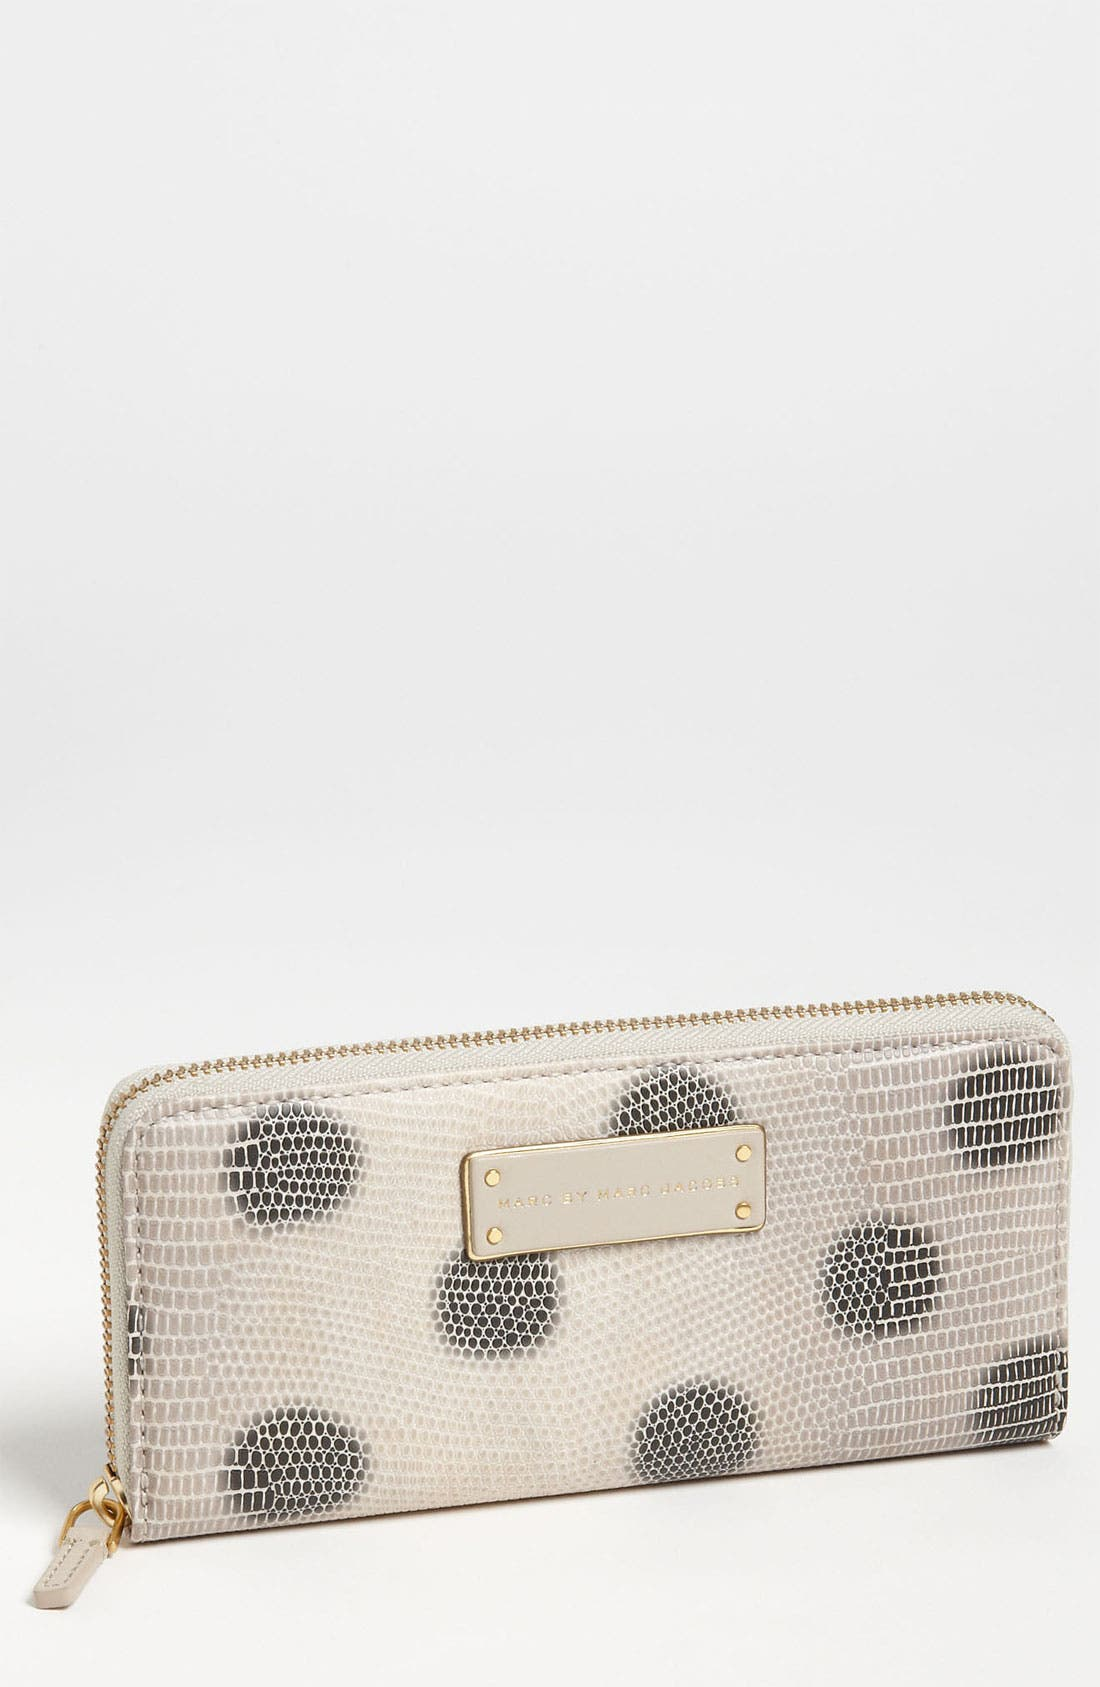 Main Image - MARC BY MARC JACOBS 'Take Me - Lizzie Spot' Embossed Zip Around Wallet